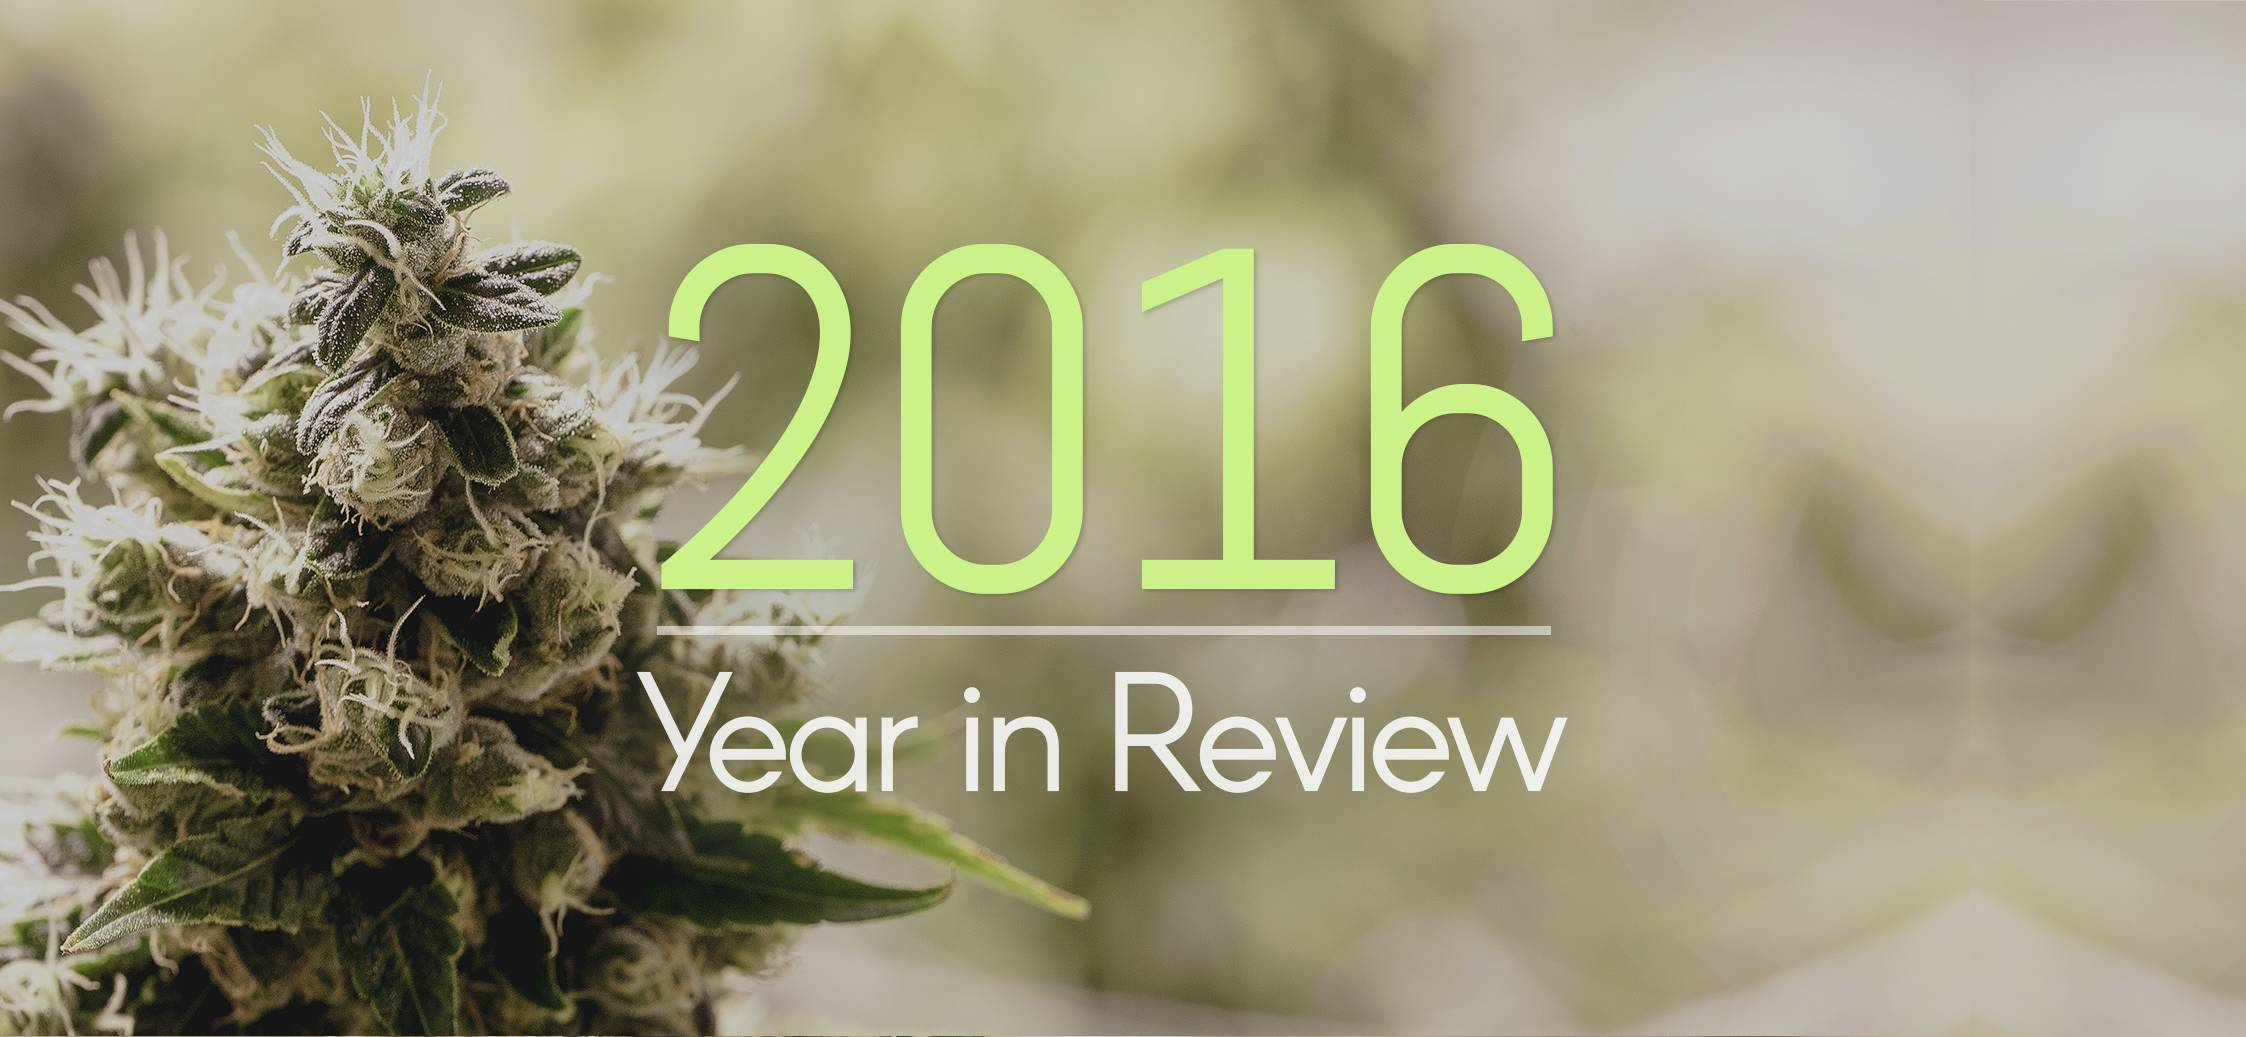 Thanks To You, Here's What Green Flower Accomplished In 2016